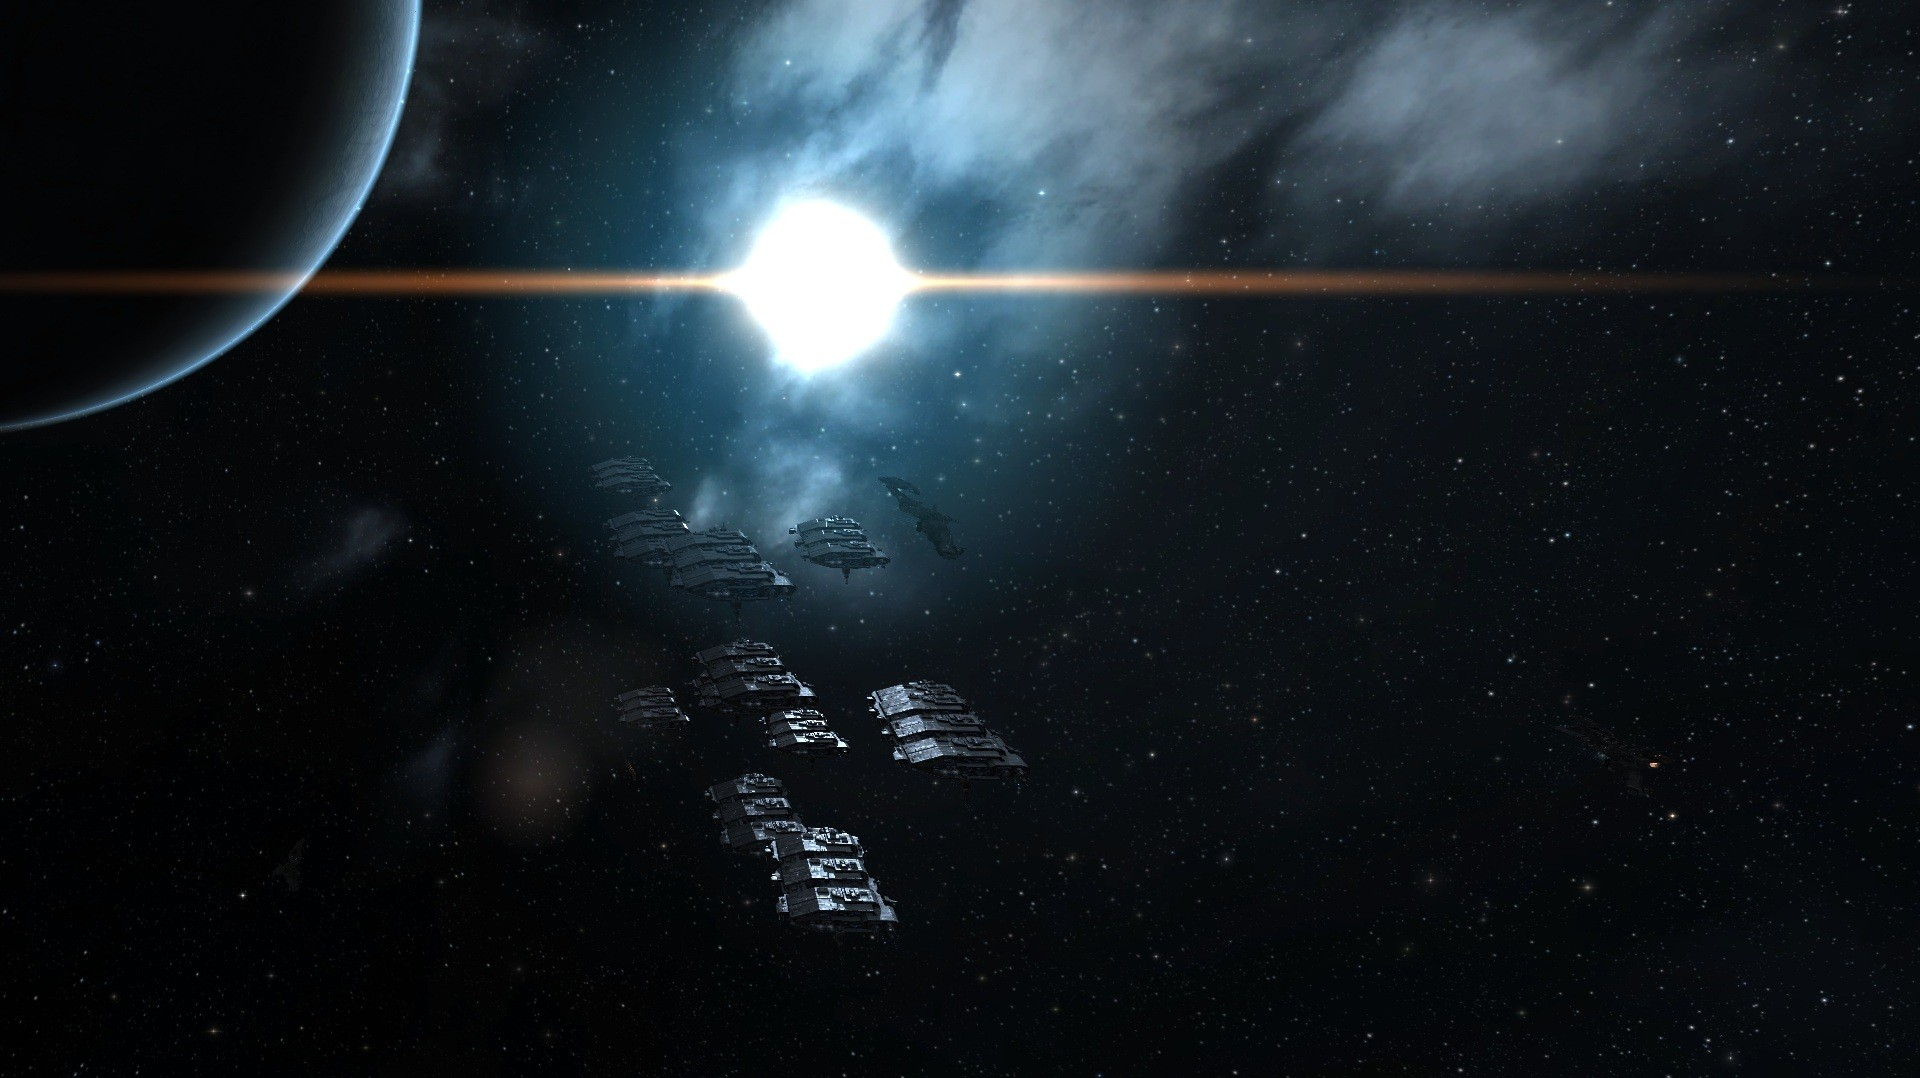 EVE Online - Moving day in the cosmos